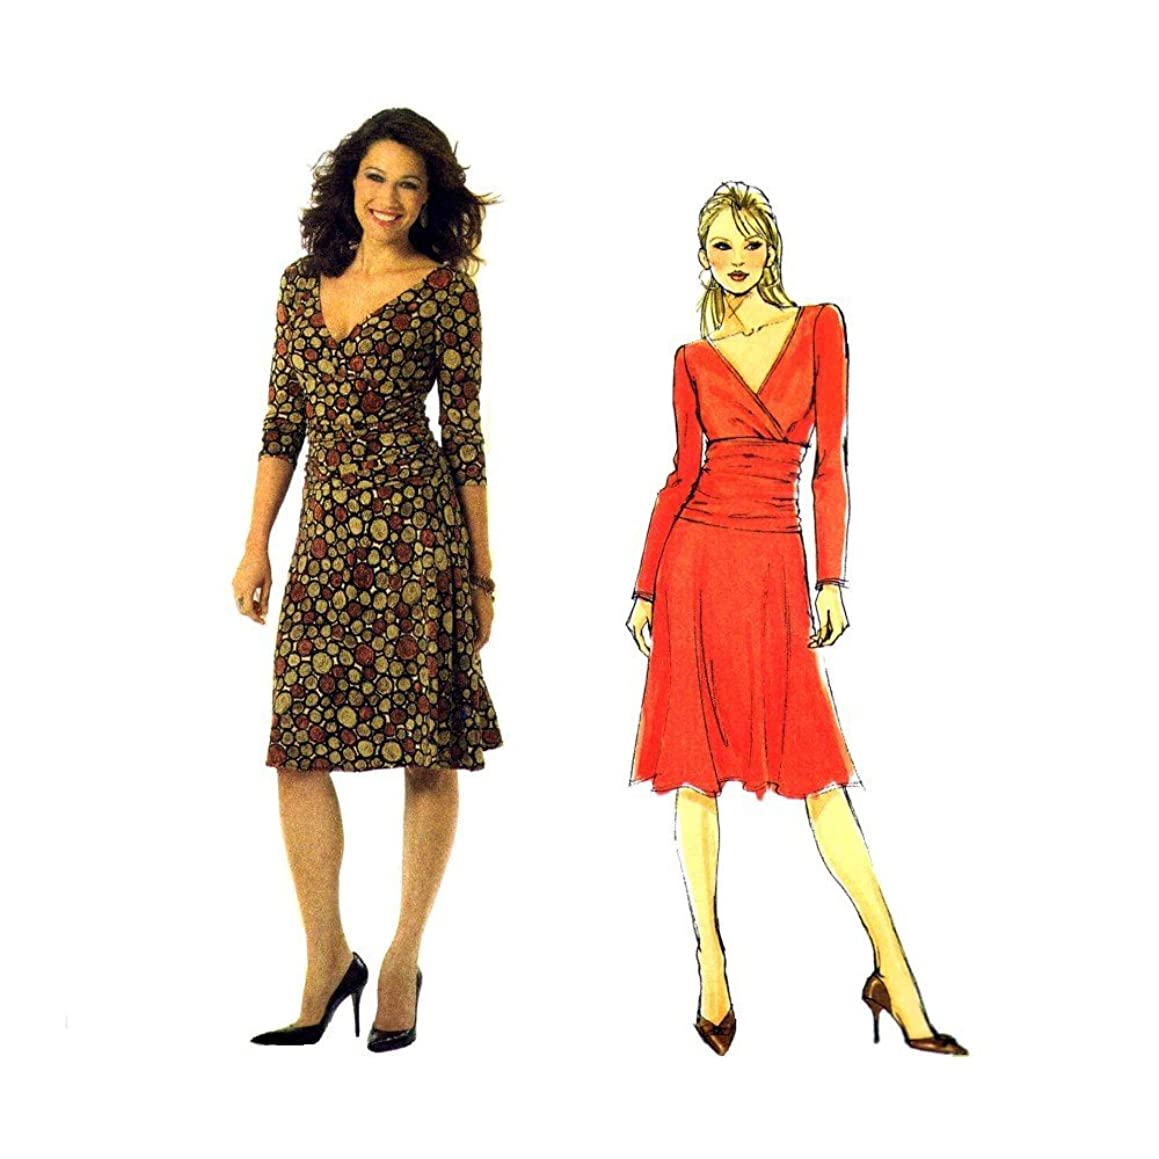 Misses Fitted Shirred Midriff Dress Butterick 4914 Sewing Pattern Size 8 thru 14